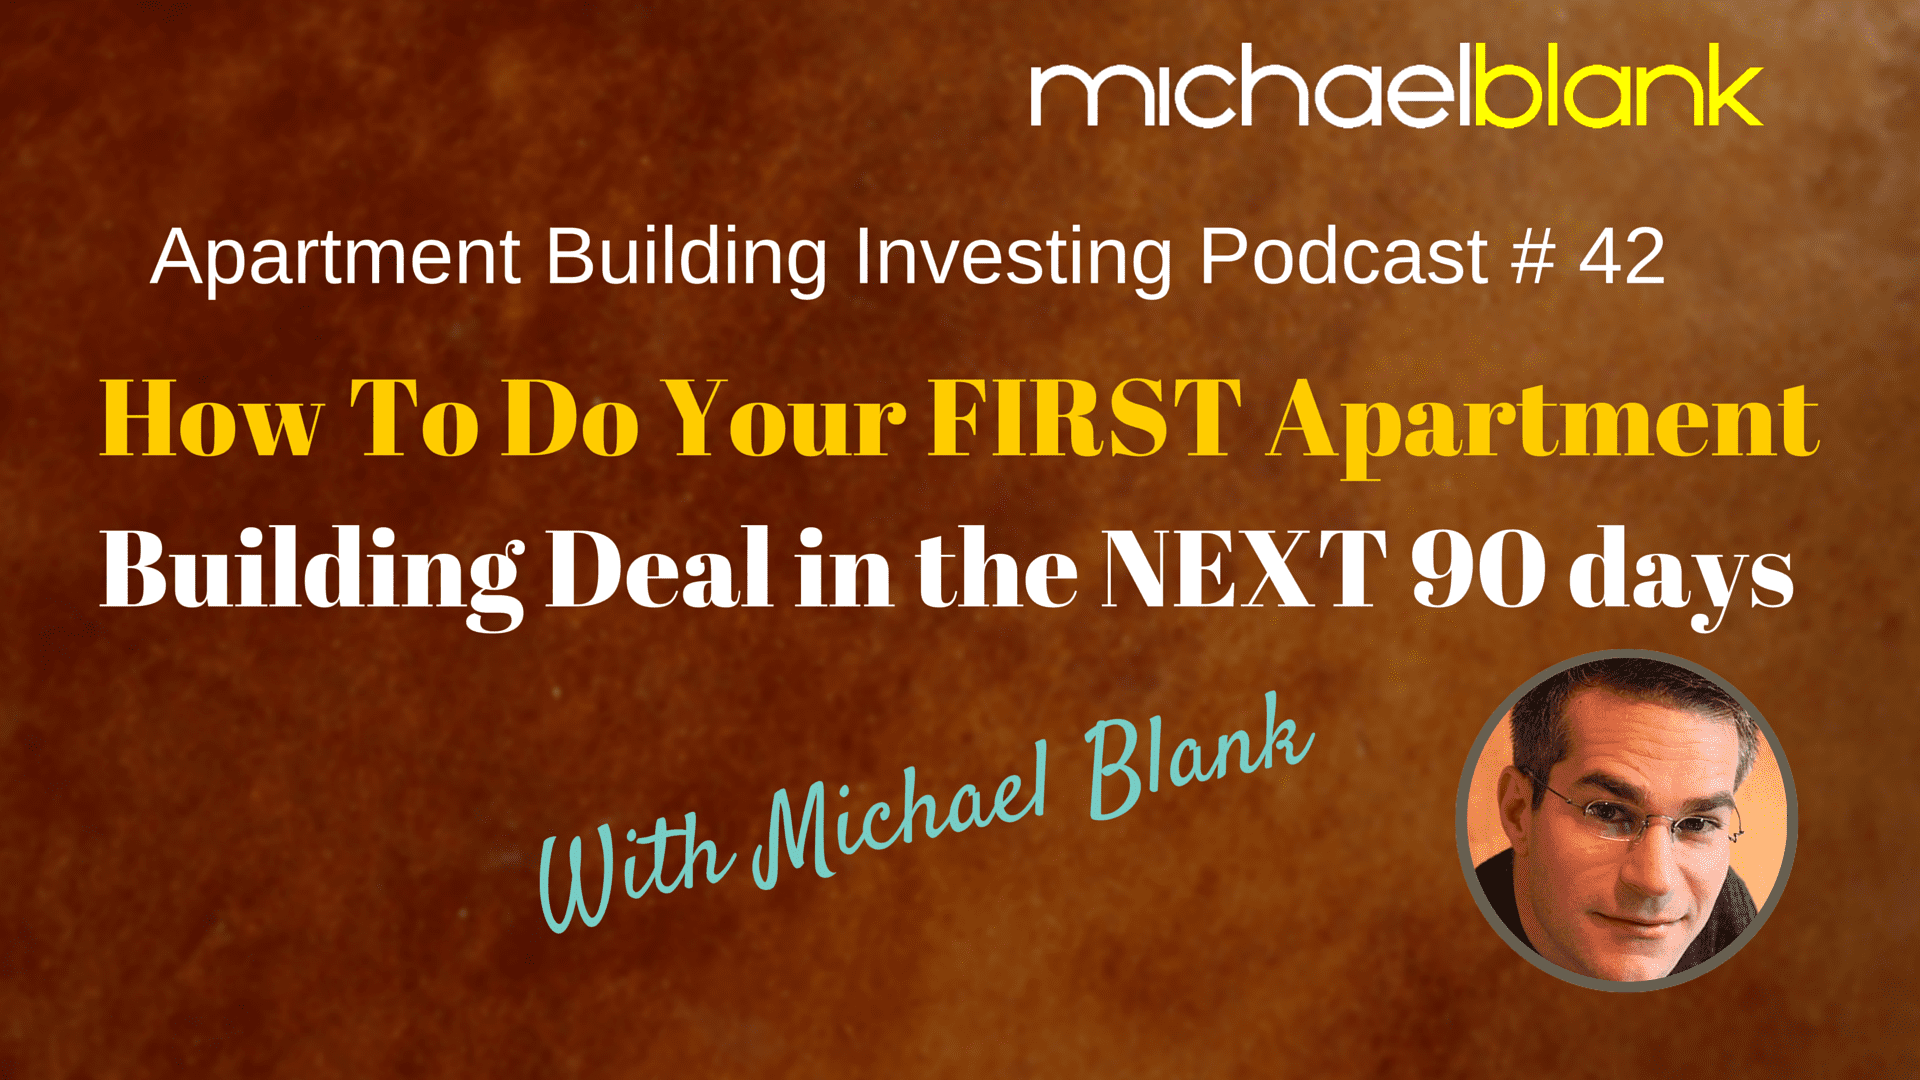 MB 042: How To Do Your FIRST Apartment Building Deal in the NEXT 90 days